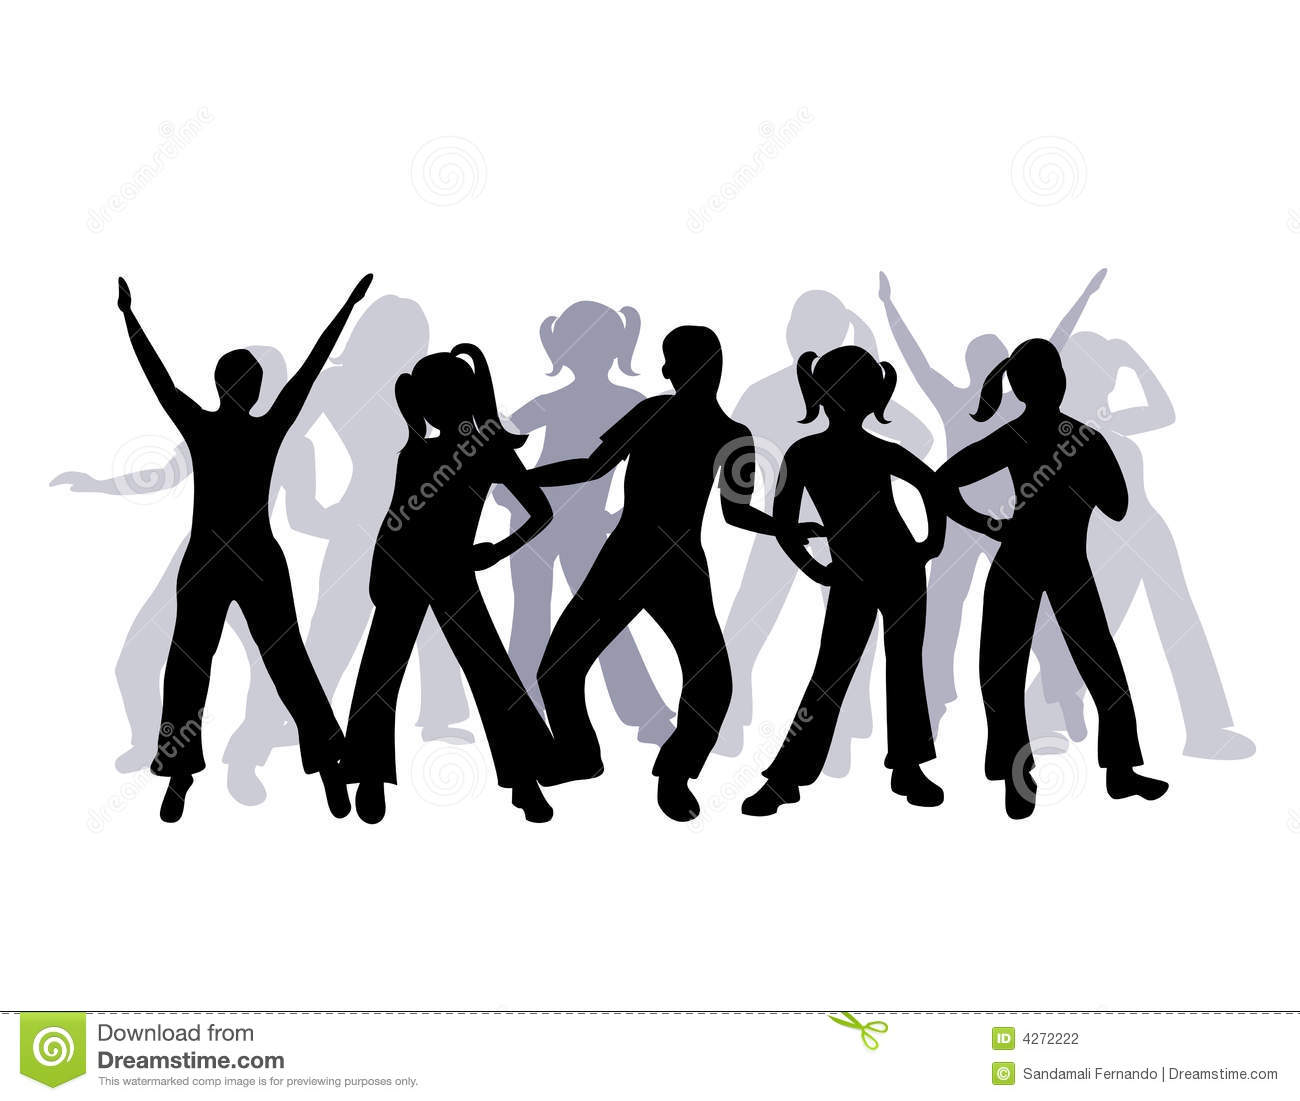 How To Read Dimensions On A Floor Plan Silhouette Group Of People Dancing Stock Photography